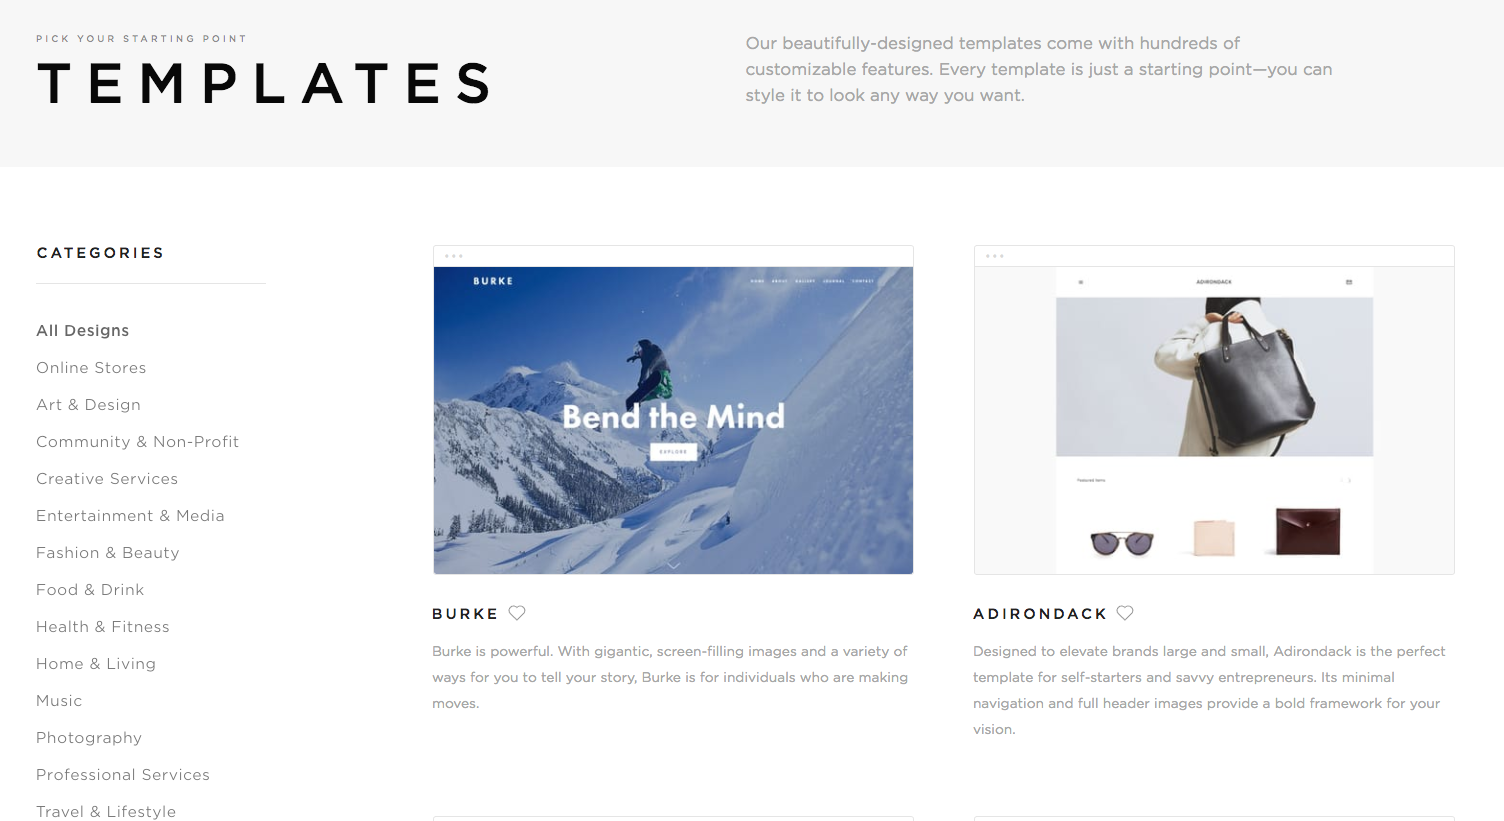 Templates available on Squarespace screenshot